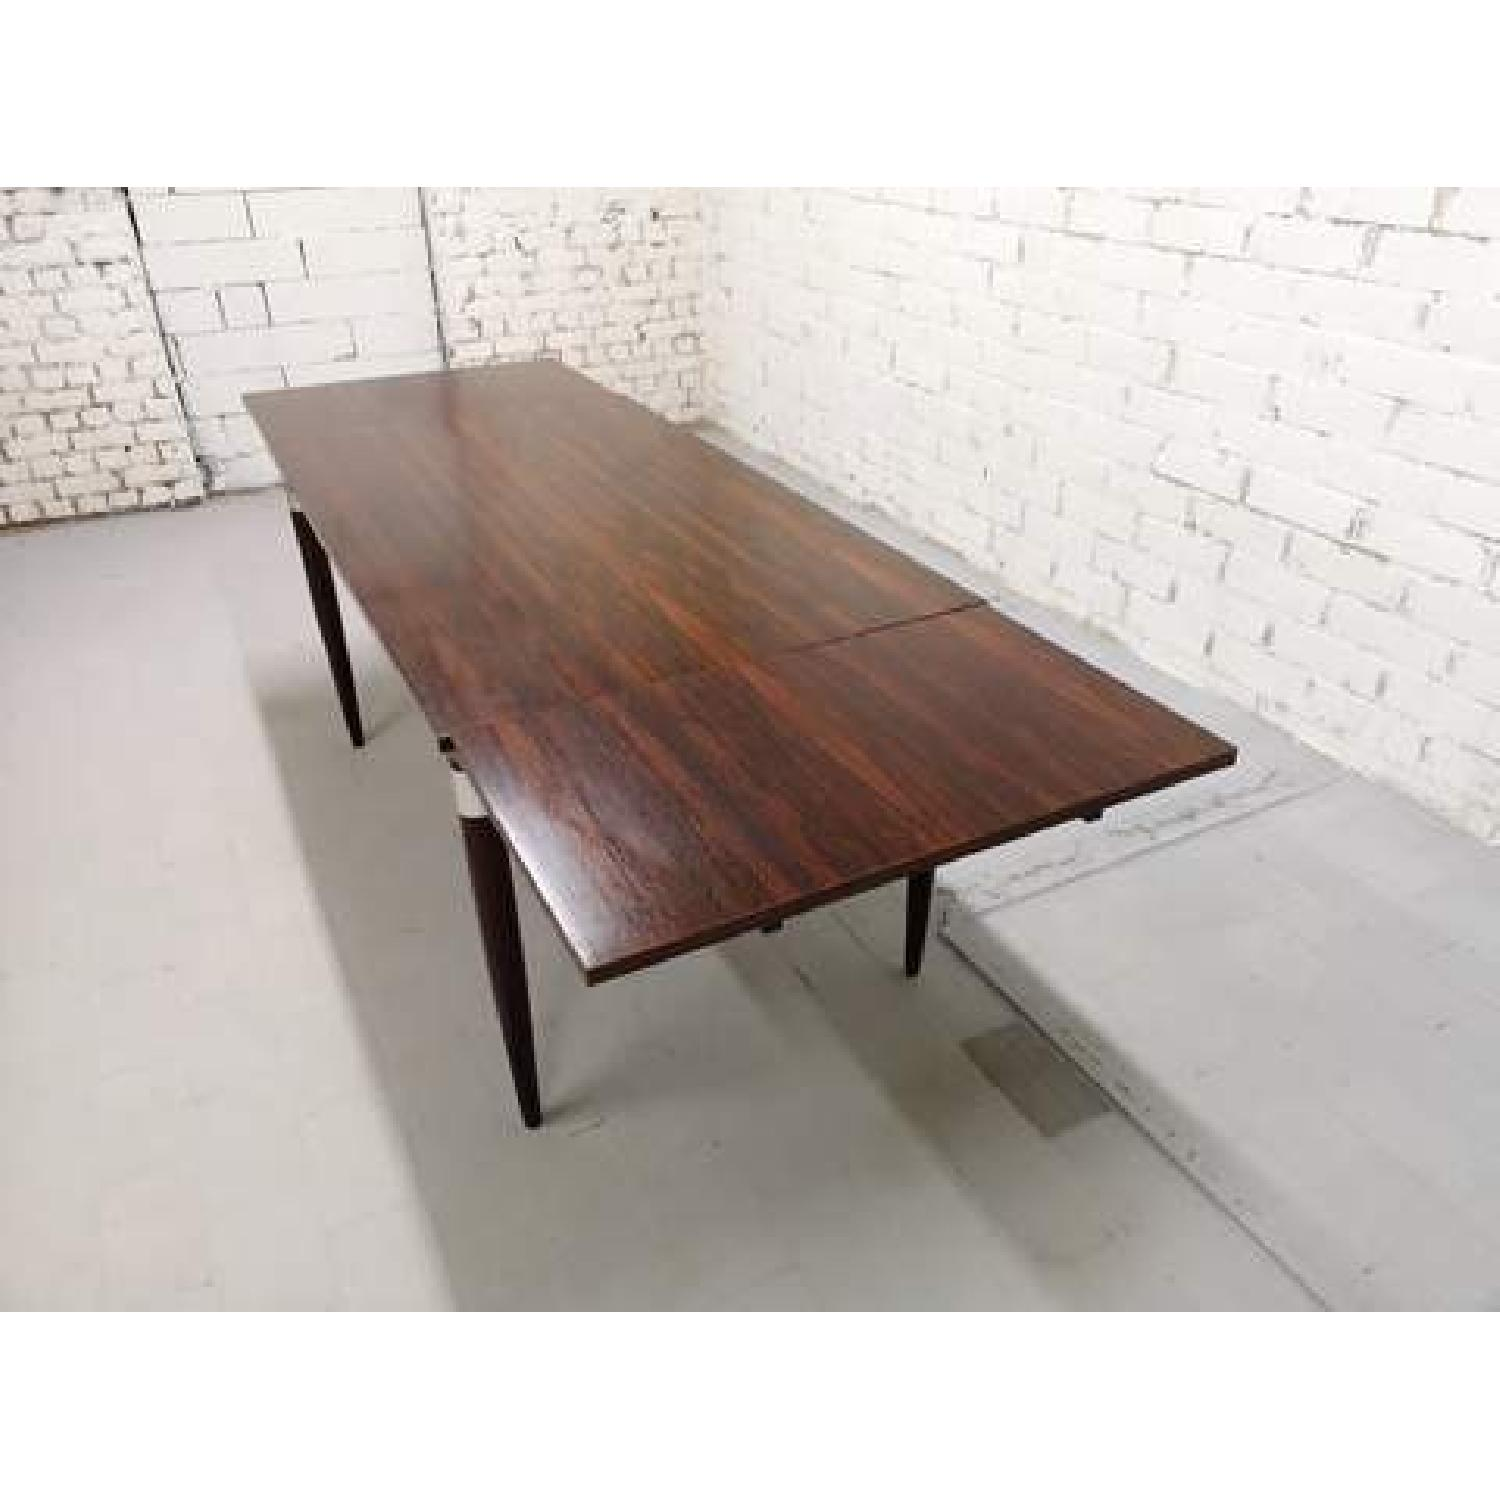 Mid-Century Modern Design Extendable Draw Leaf Dining Table - image-4